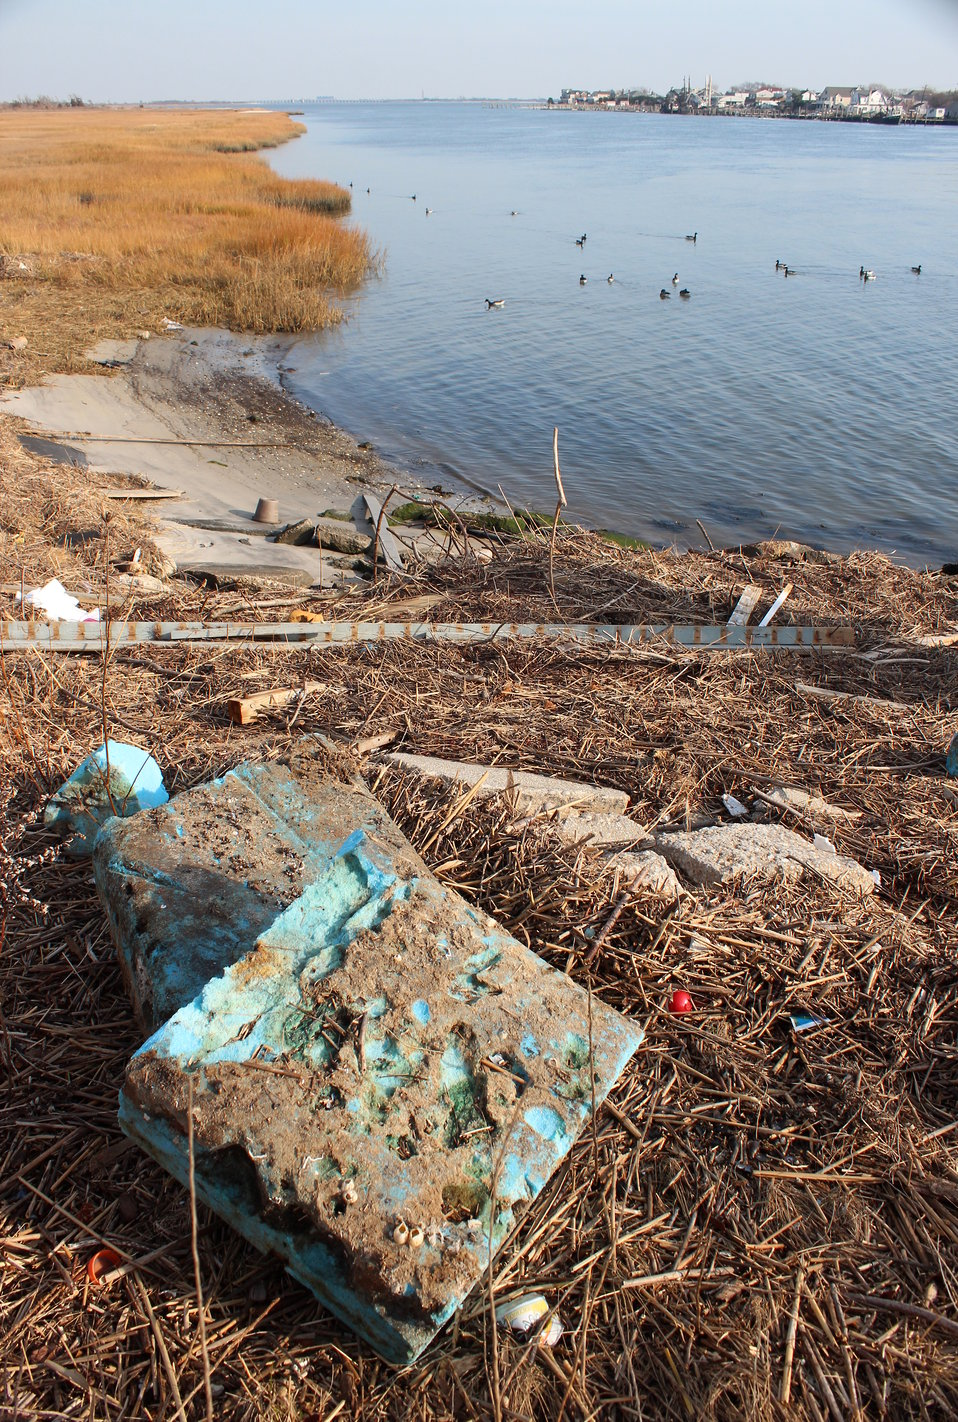 December 3, 2012 – Leftover debris from Hurricane Sandy